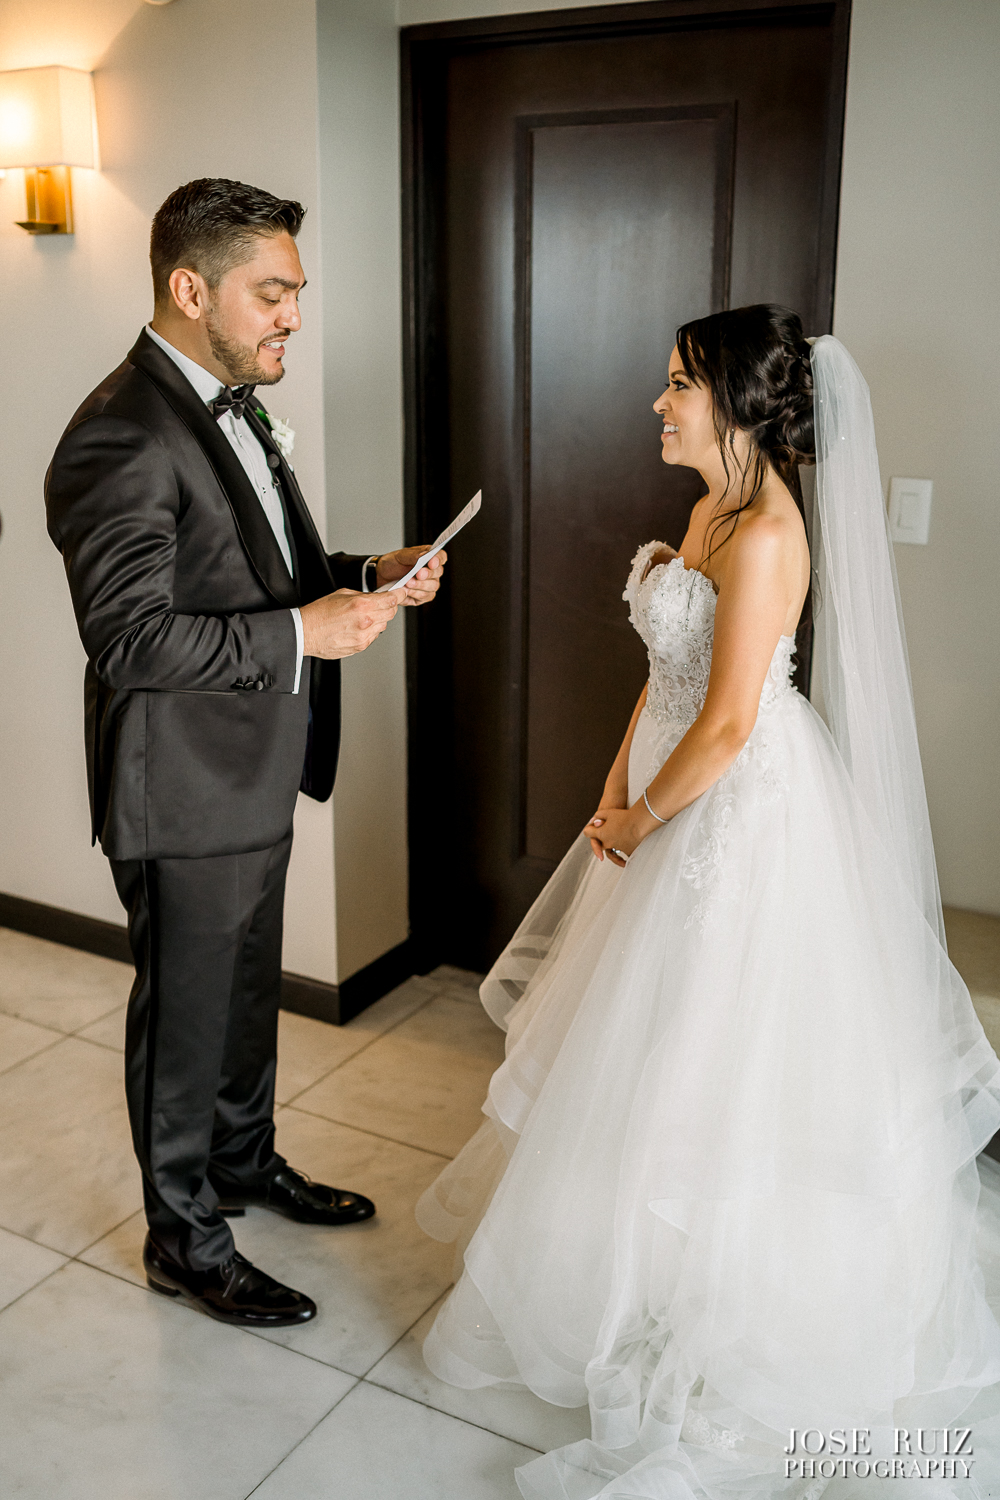 Jose Ruiz Photography- Madalyn & Joel-0047.jpg